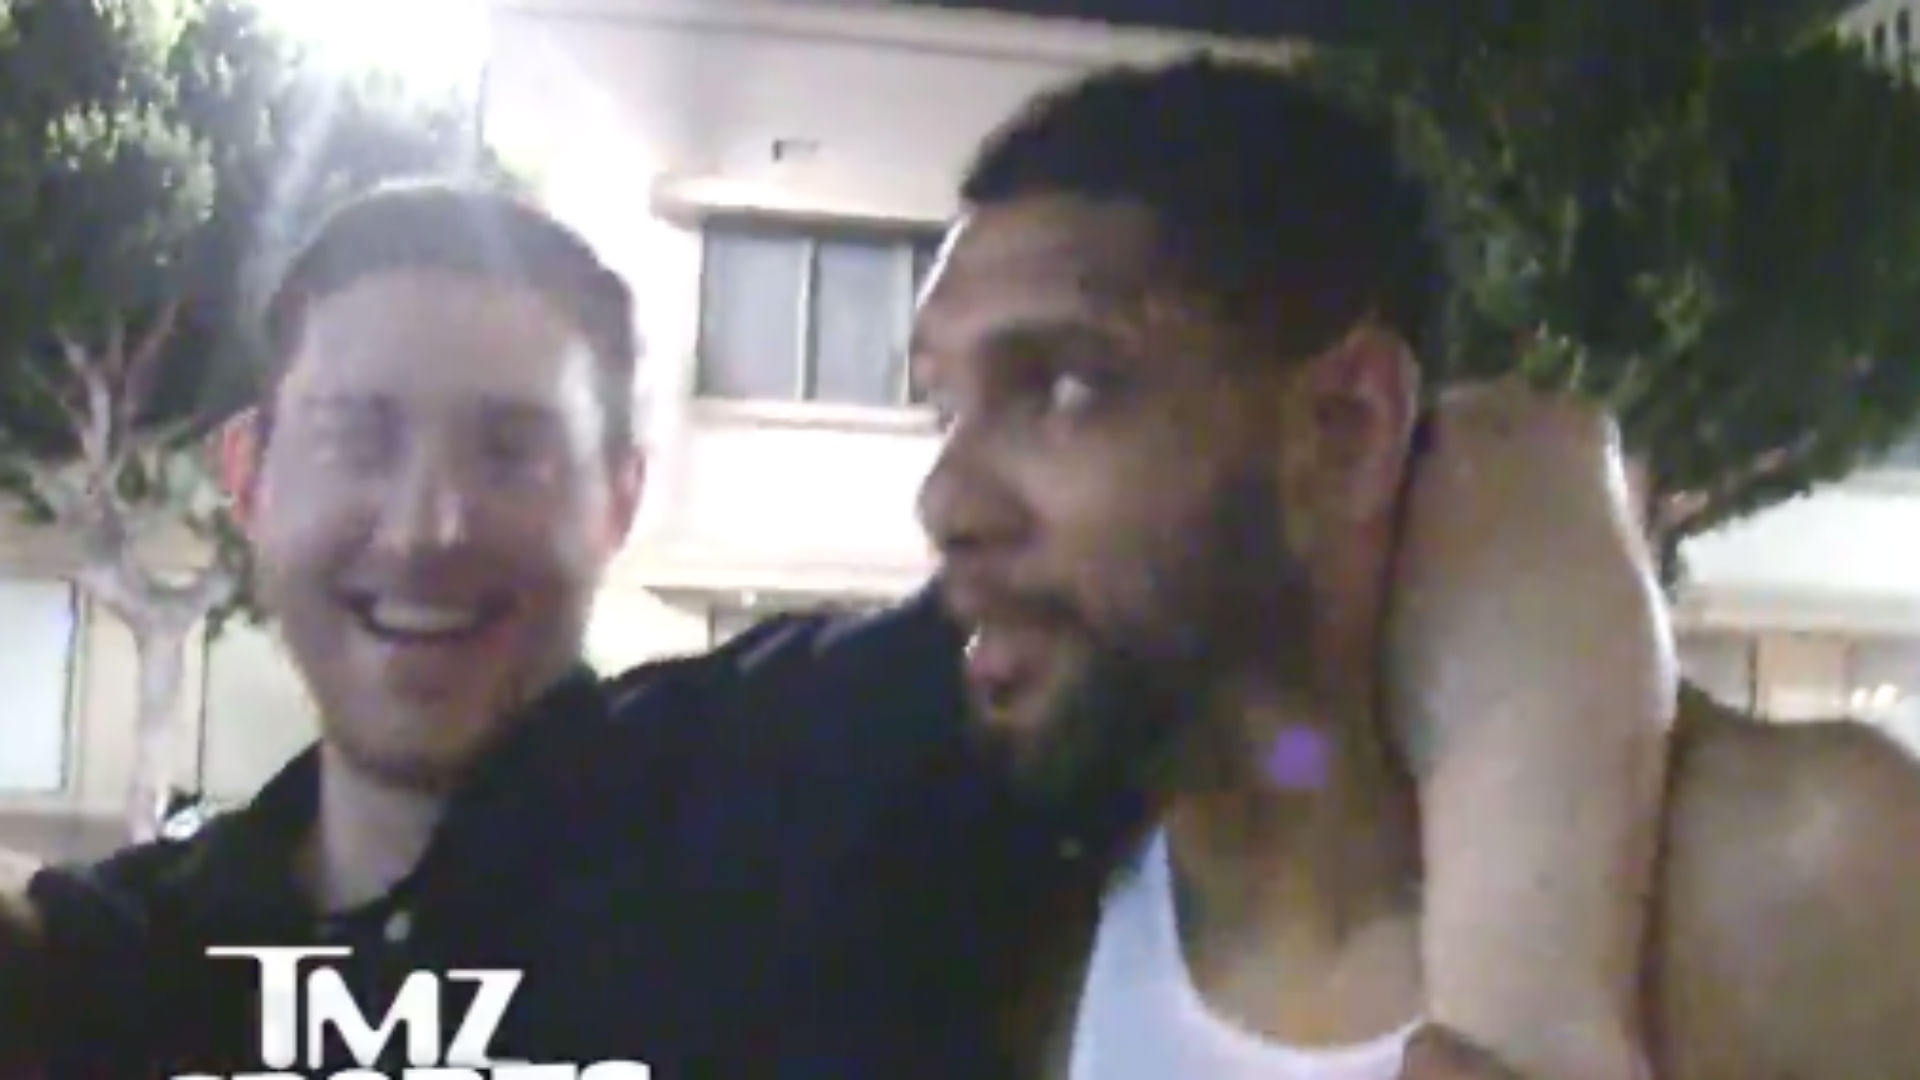 Tim Duncan carries Aron Baynes out of a club after Game 7 loss